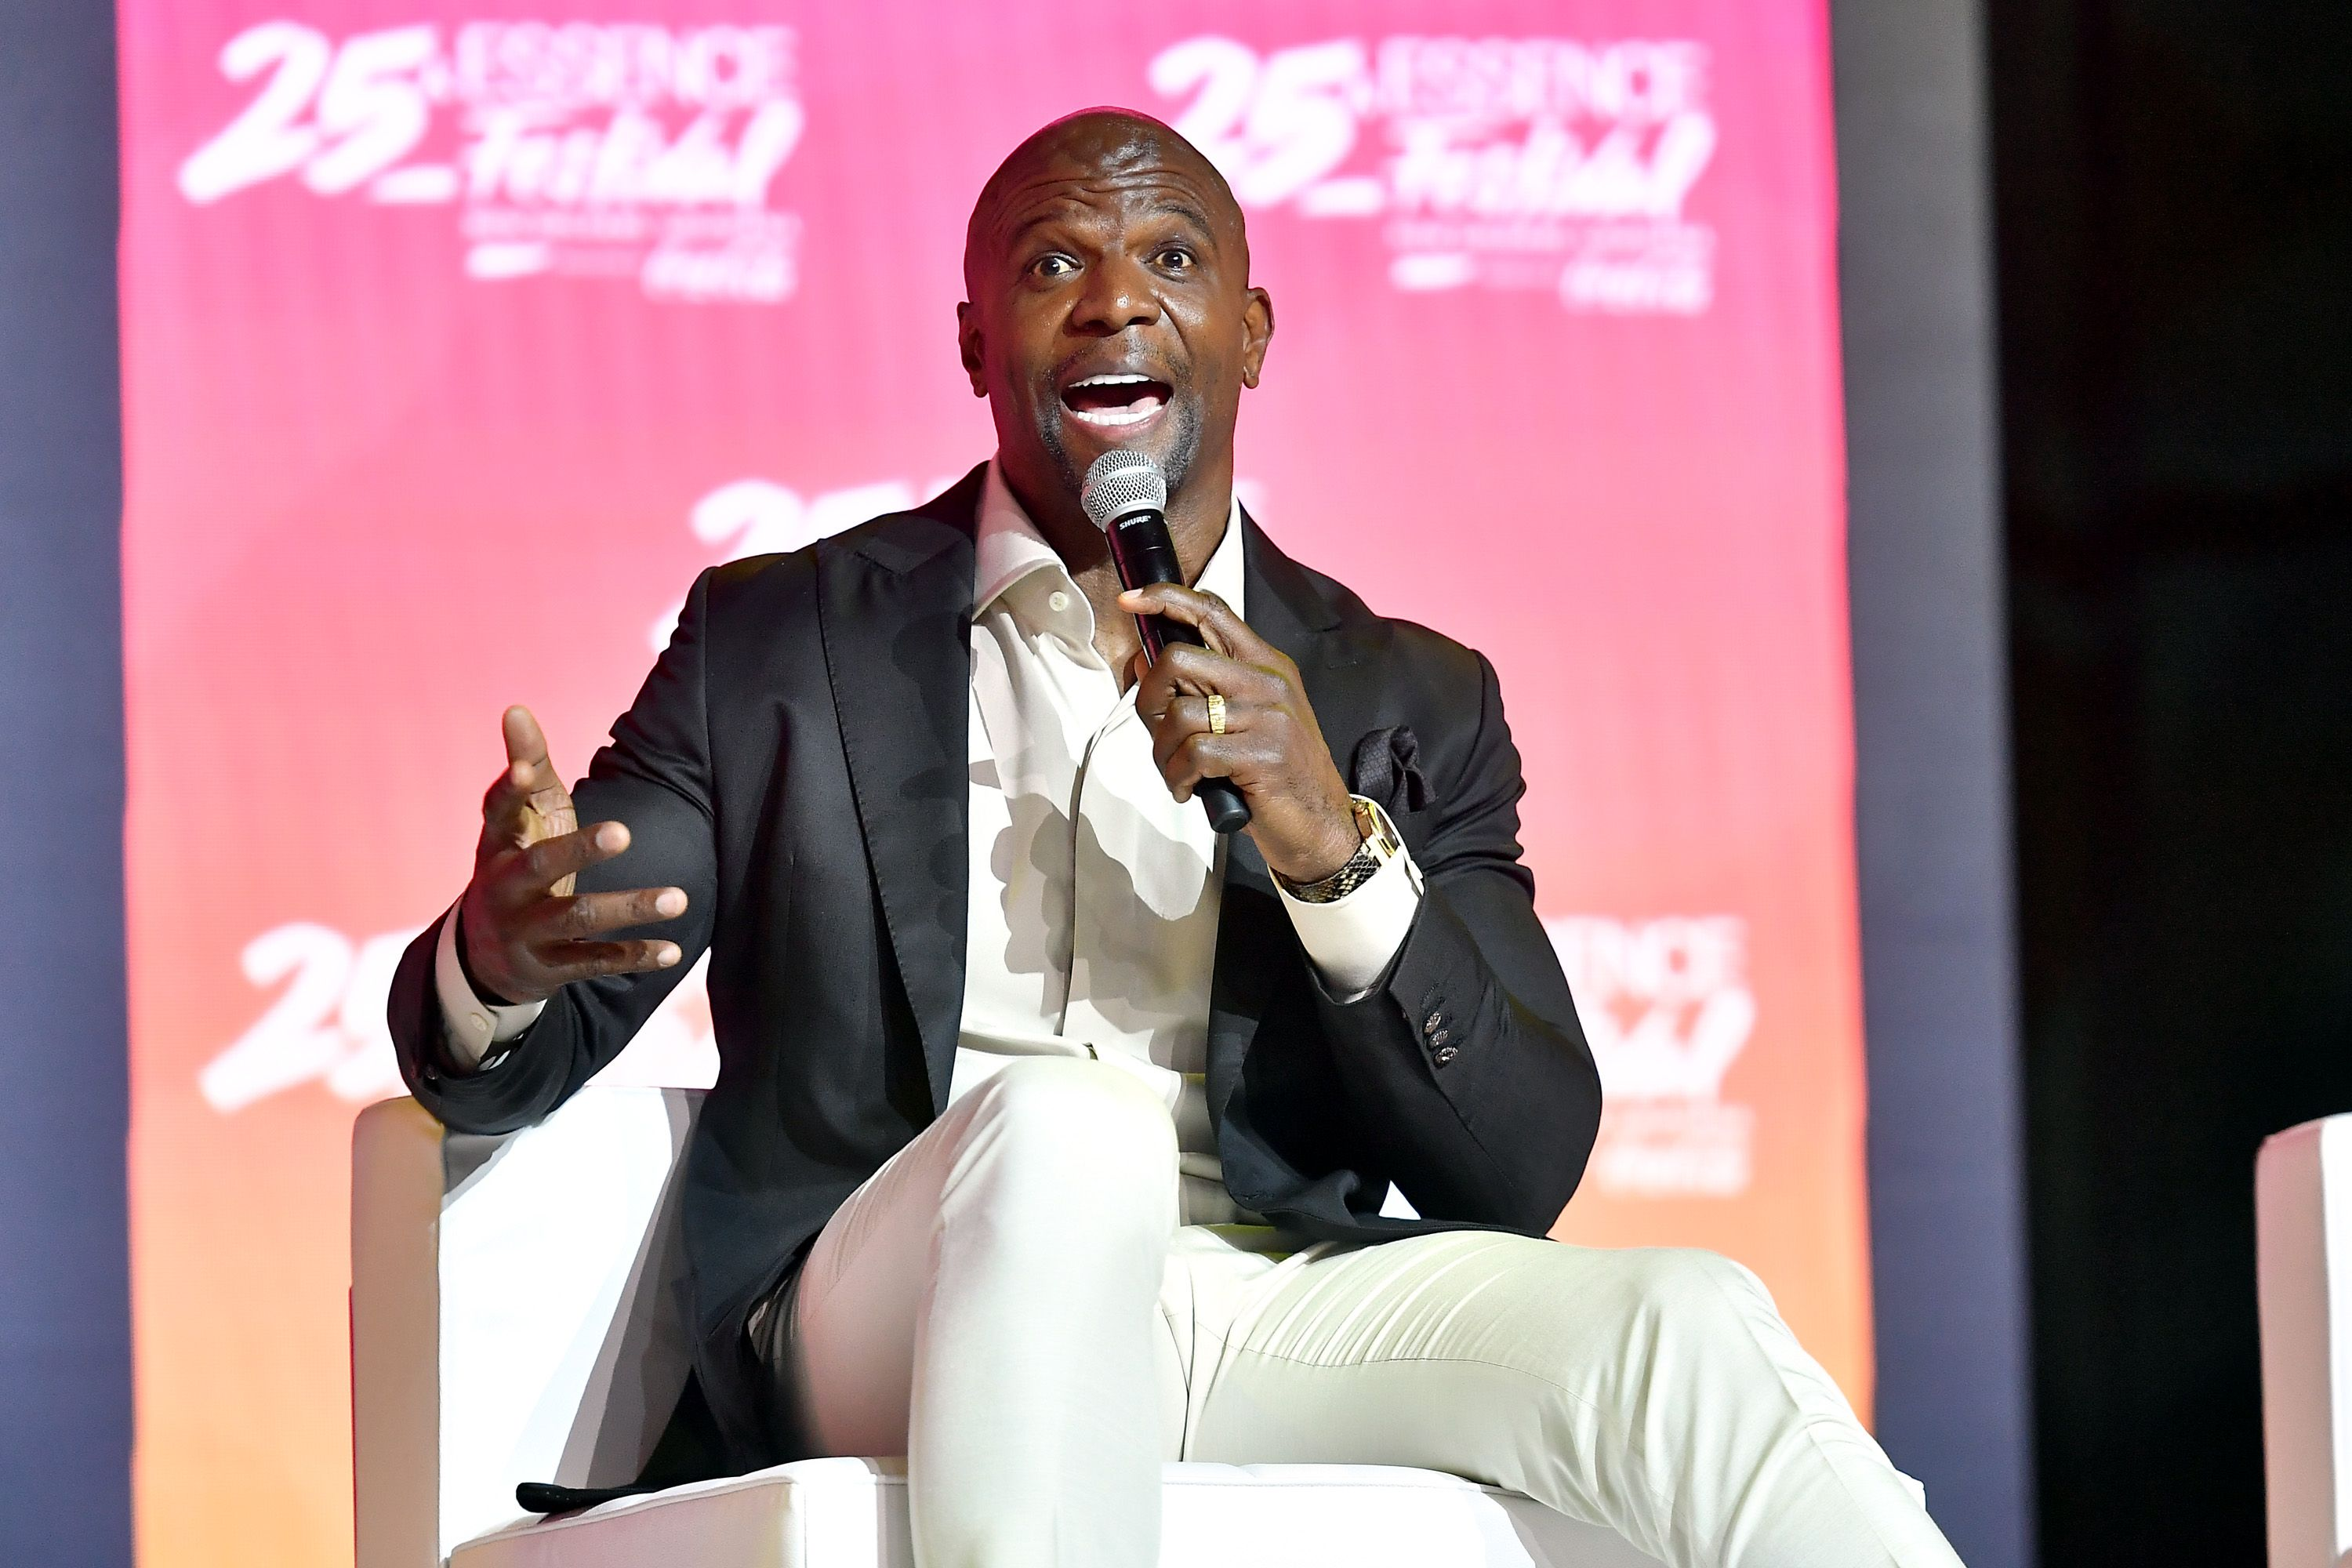 Terry Crews Just Got Very Candid About Sexual Assault and the 'Me Too' Movement